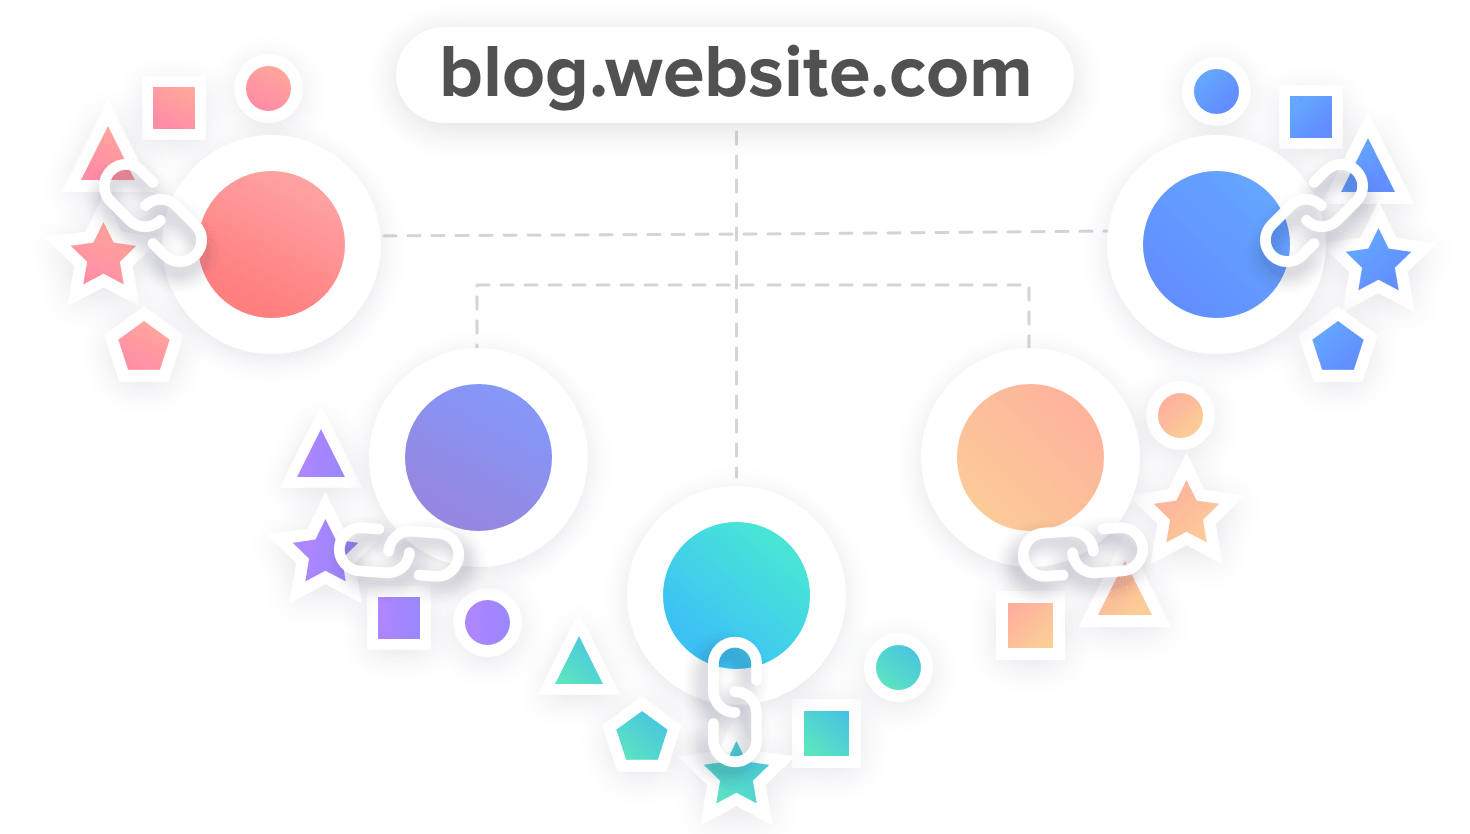 topic-cluster-model-for-blogs